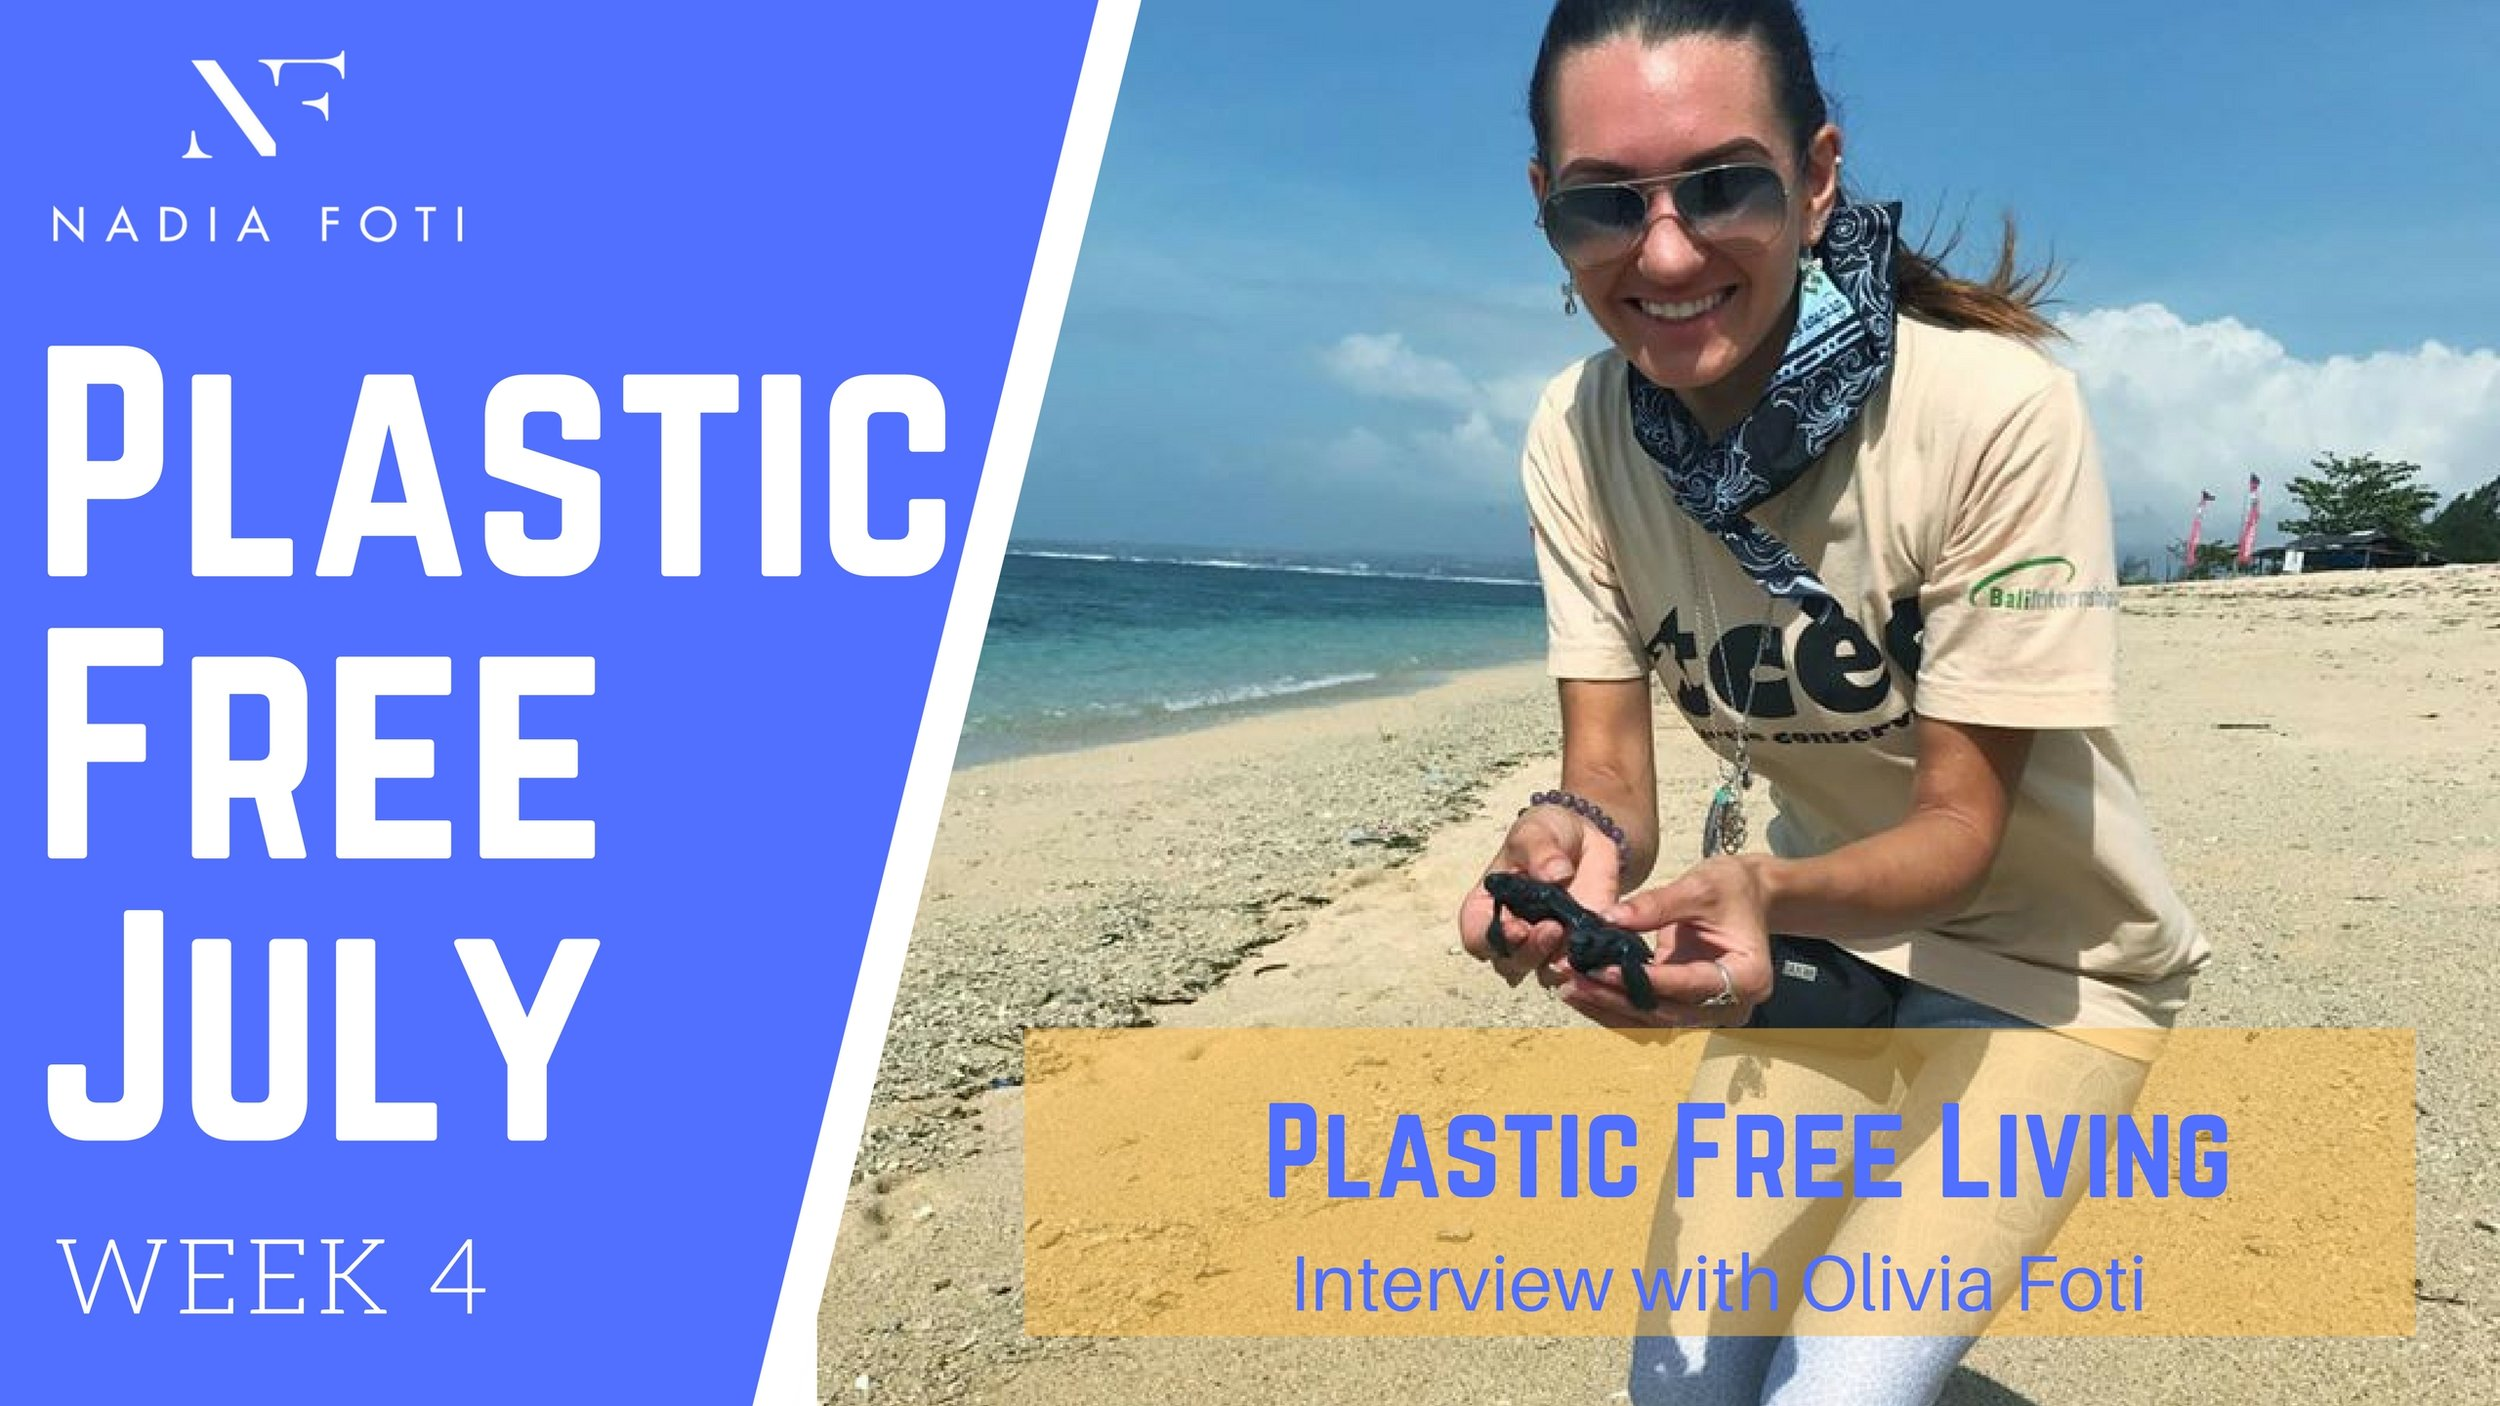 Next Week... - We talk to the founder of The Plastic Free Movement Olivia Foti. Olivia is a passionate environmentalist and is saving one baby turtle at a time with her range of reusable beauty and home wear goods. Stay tuned for the full interview next week!